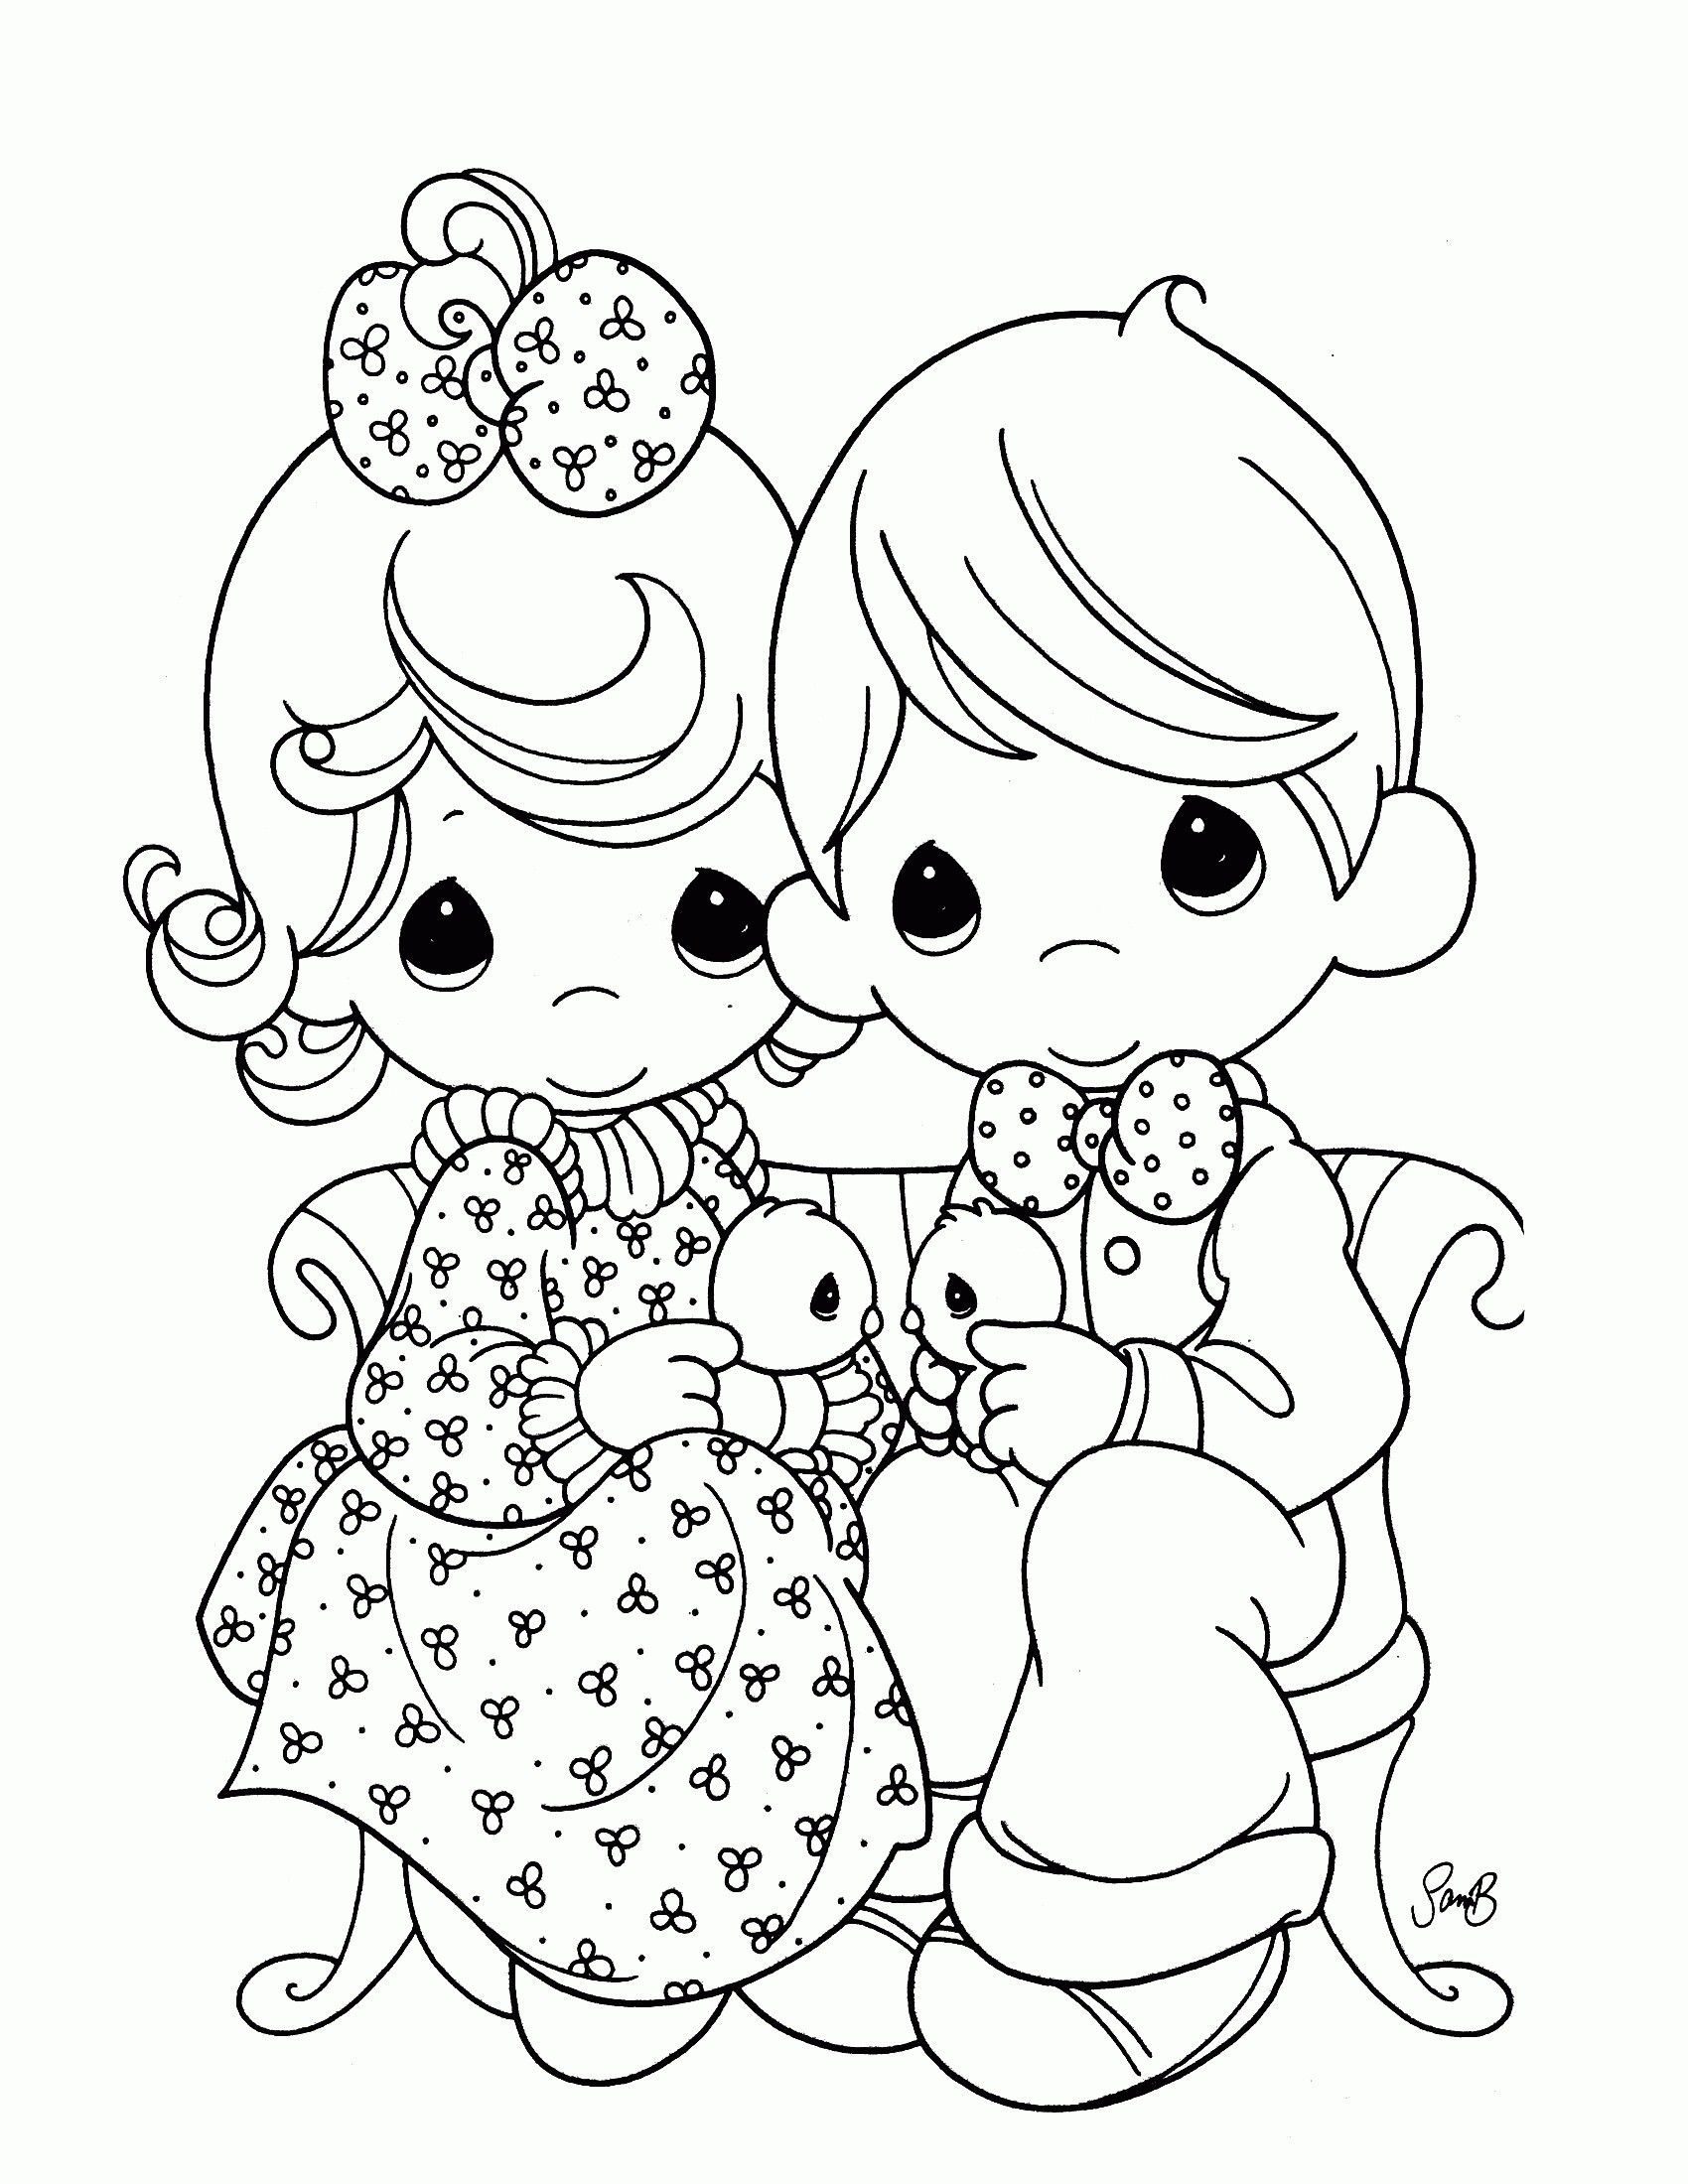 Precious Moments Coloring Book Pages to Print Gallery 1d - Save it to your computer